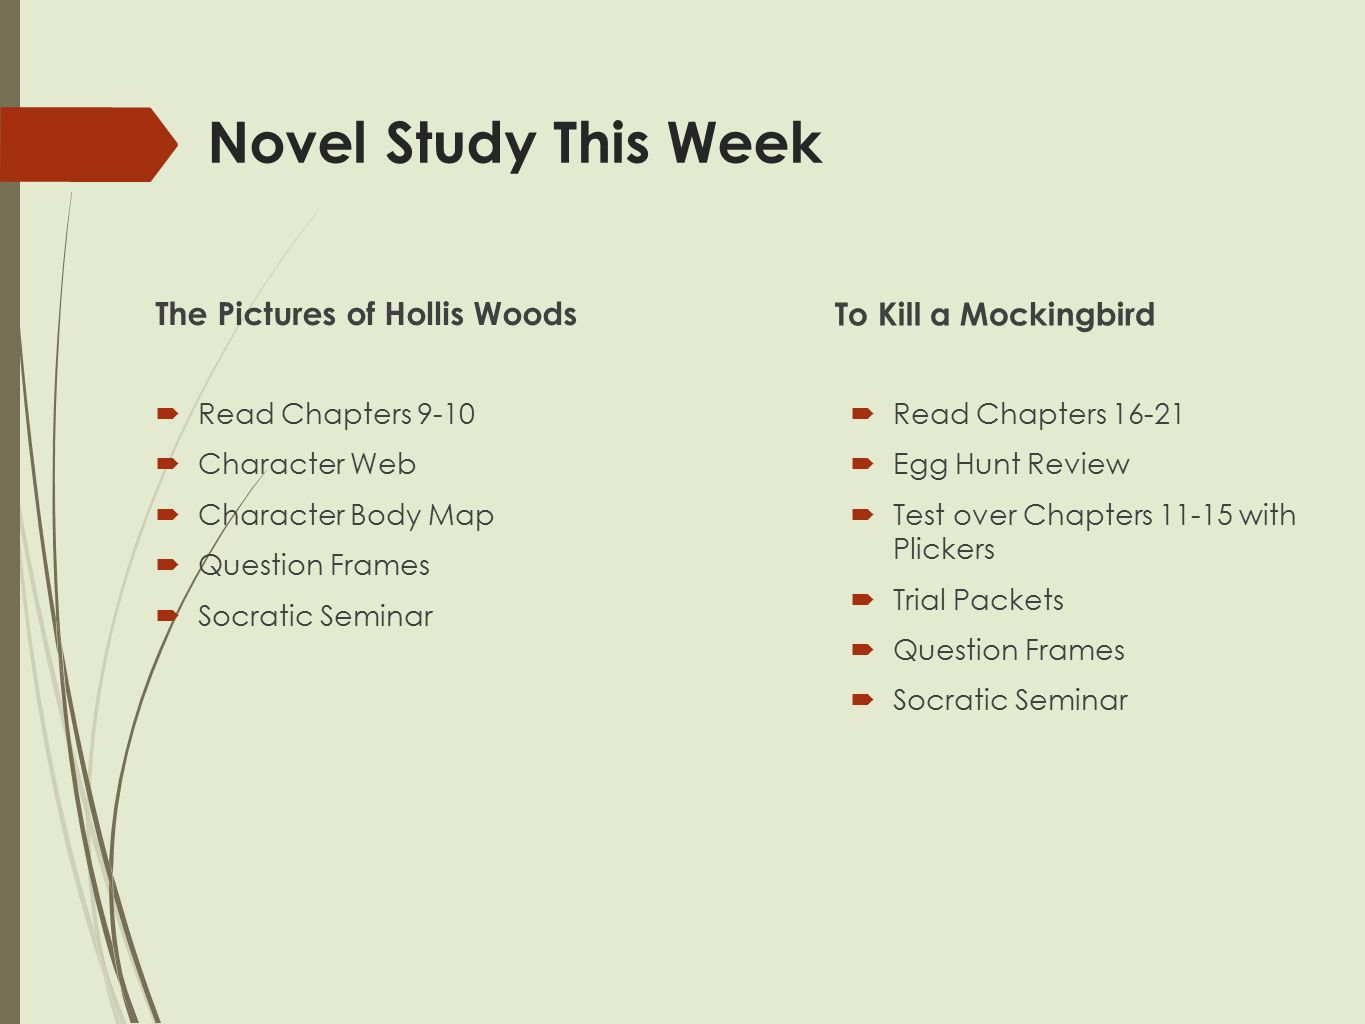 Novel Study This Week The Pictures of Hollis Woods  Read Chapters 9-10  Character Web  Character Body Map  Question Frames  Socratic Seminar To Kill a Mockingbird  Read Chapters  Egg Hunt Review  Test over Chapters with Plickers  Trial Packets  Question Frames  Socratic Seminar